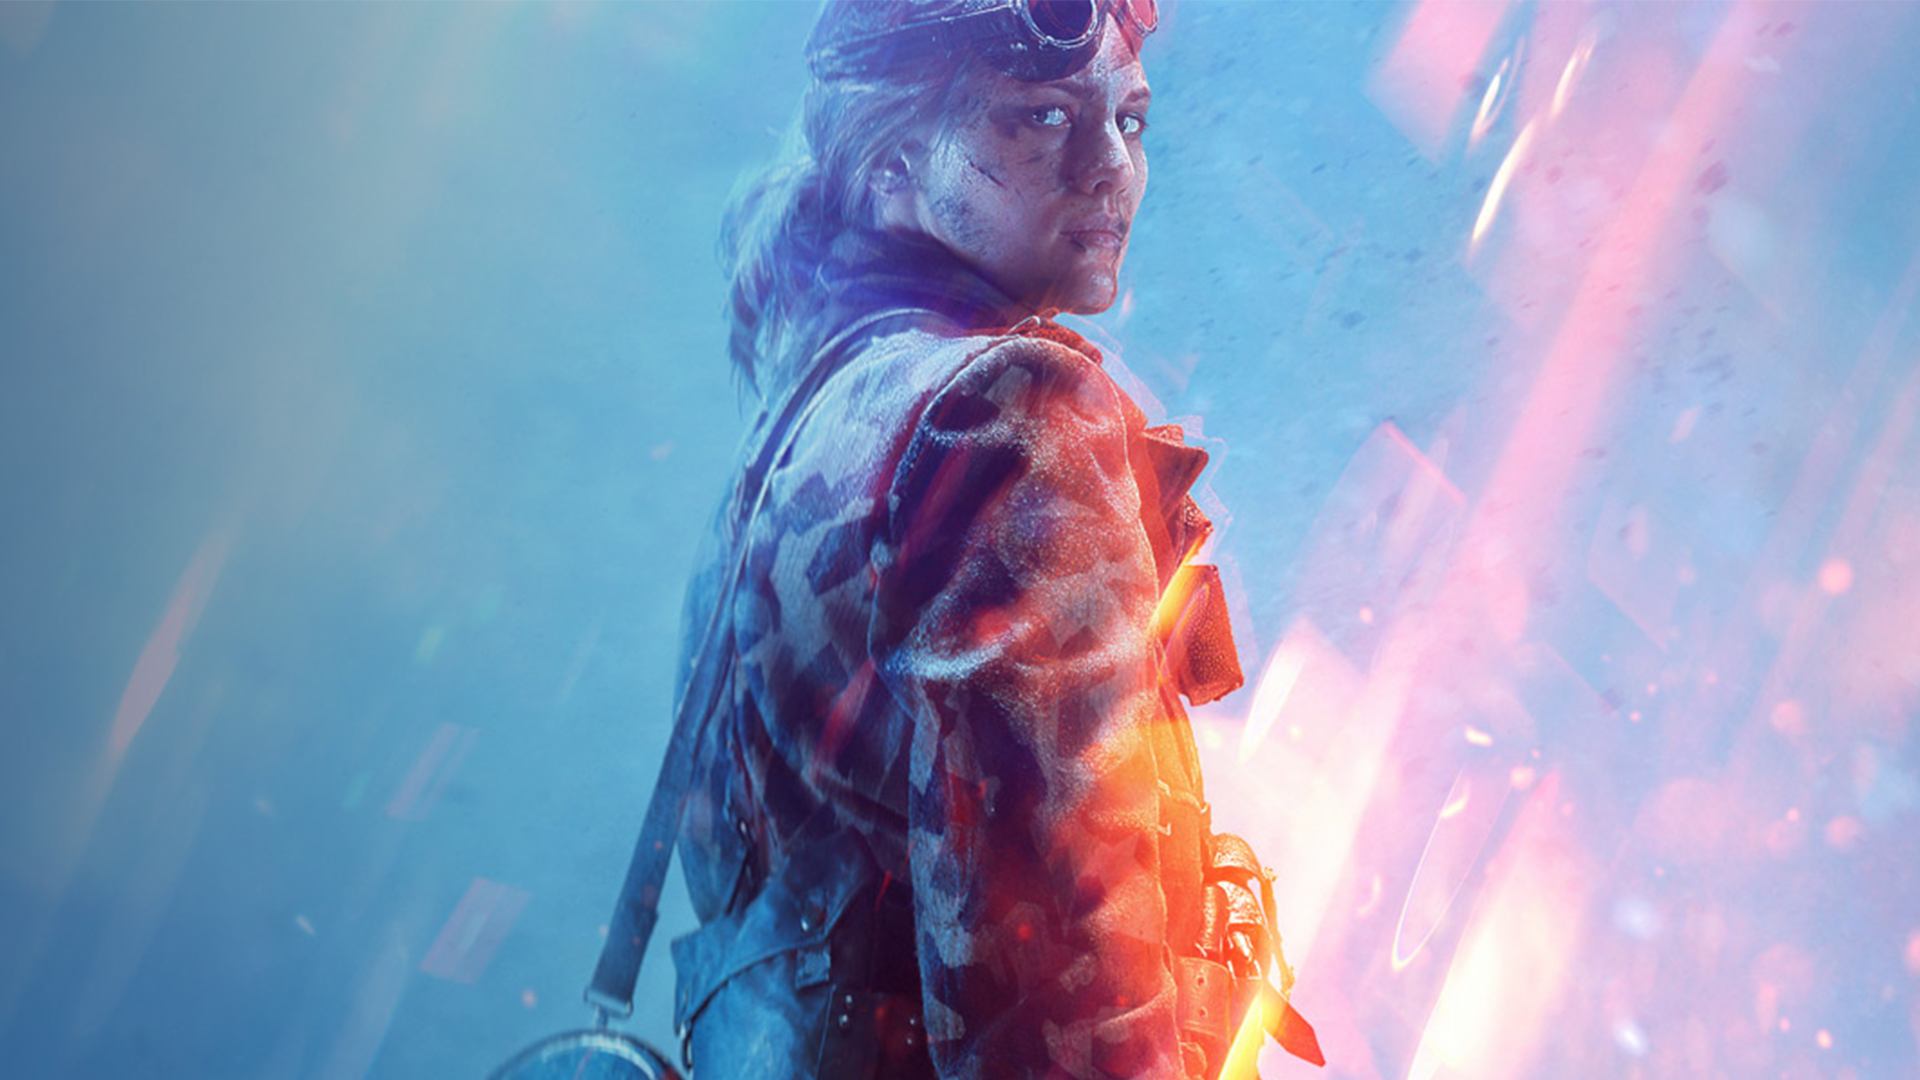 Battlefield V Wallpapers Hd Wallpapers 4k In 2019